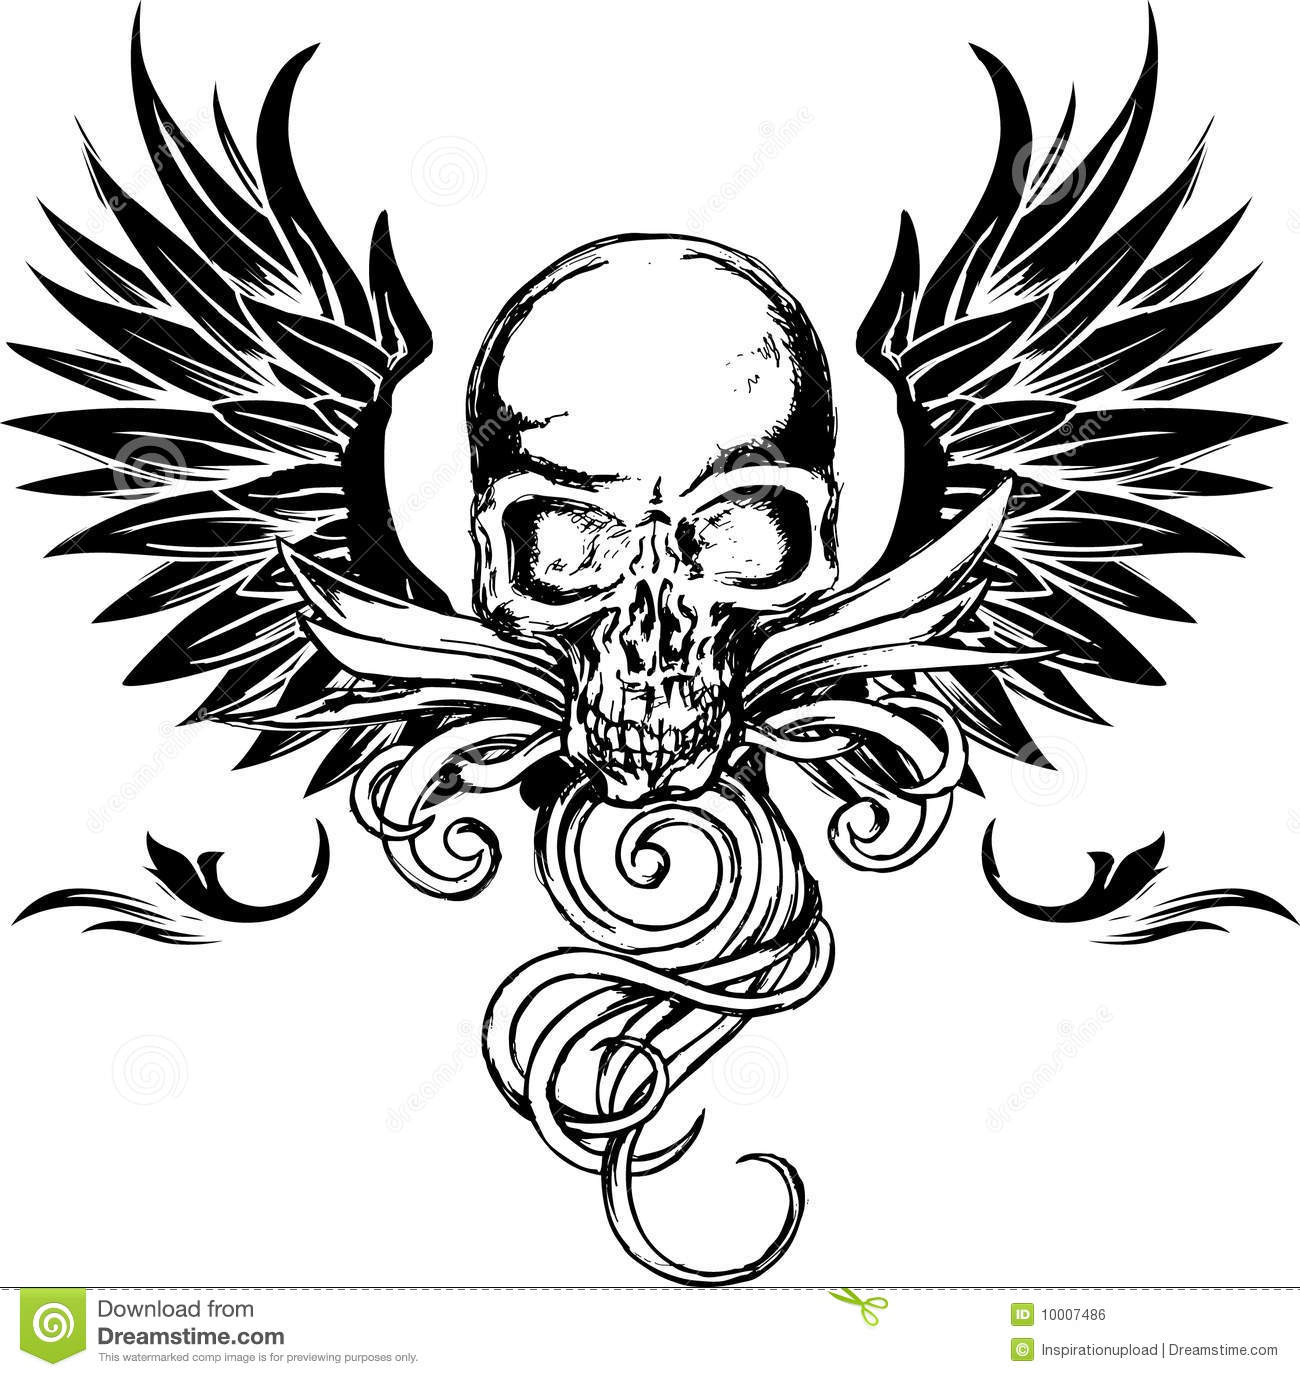 Detailed Skull With Wings Royalty Free Stock Image Image 10007486